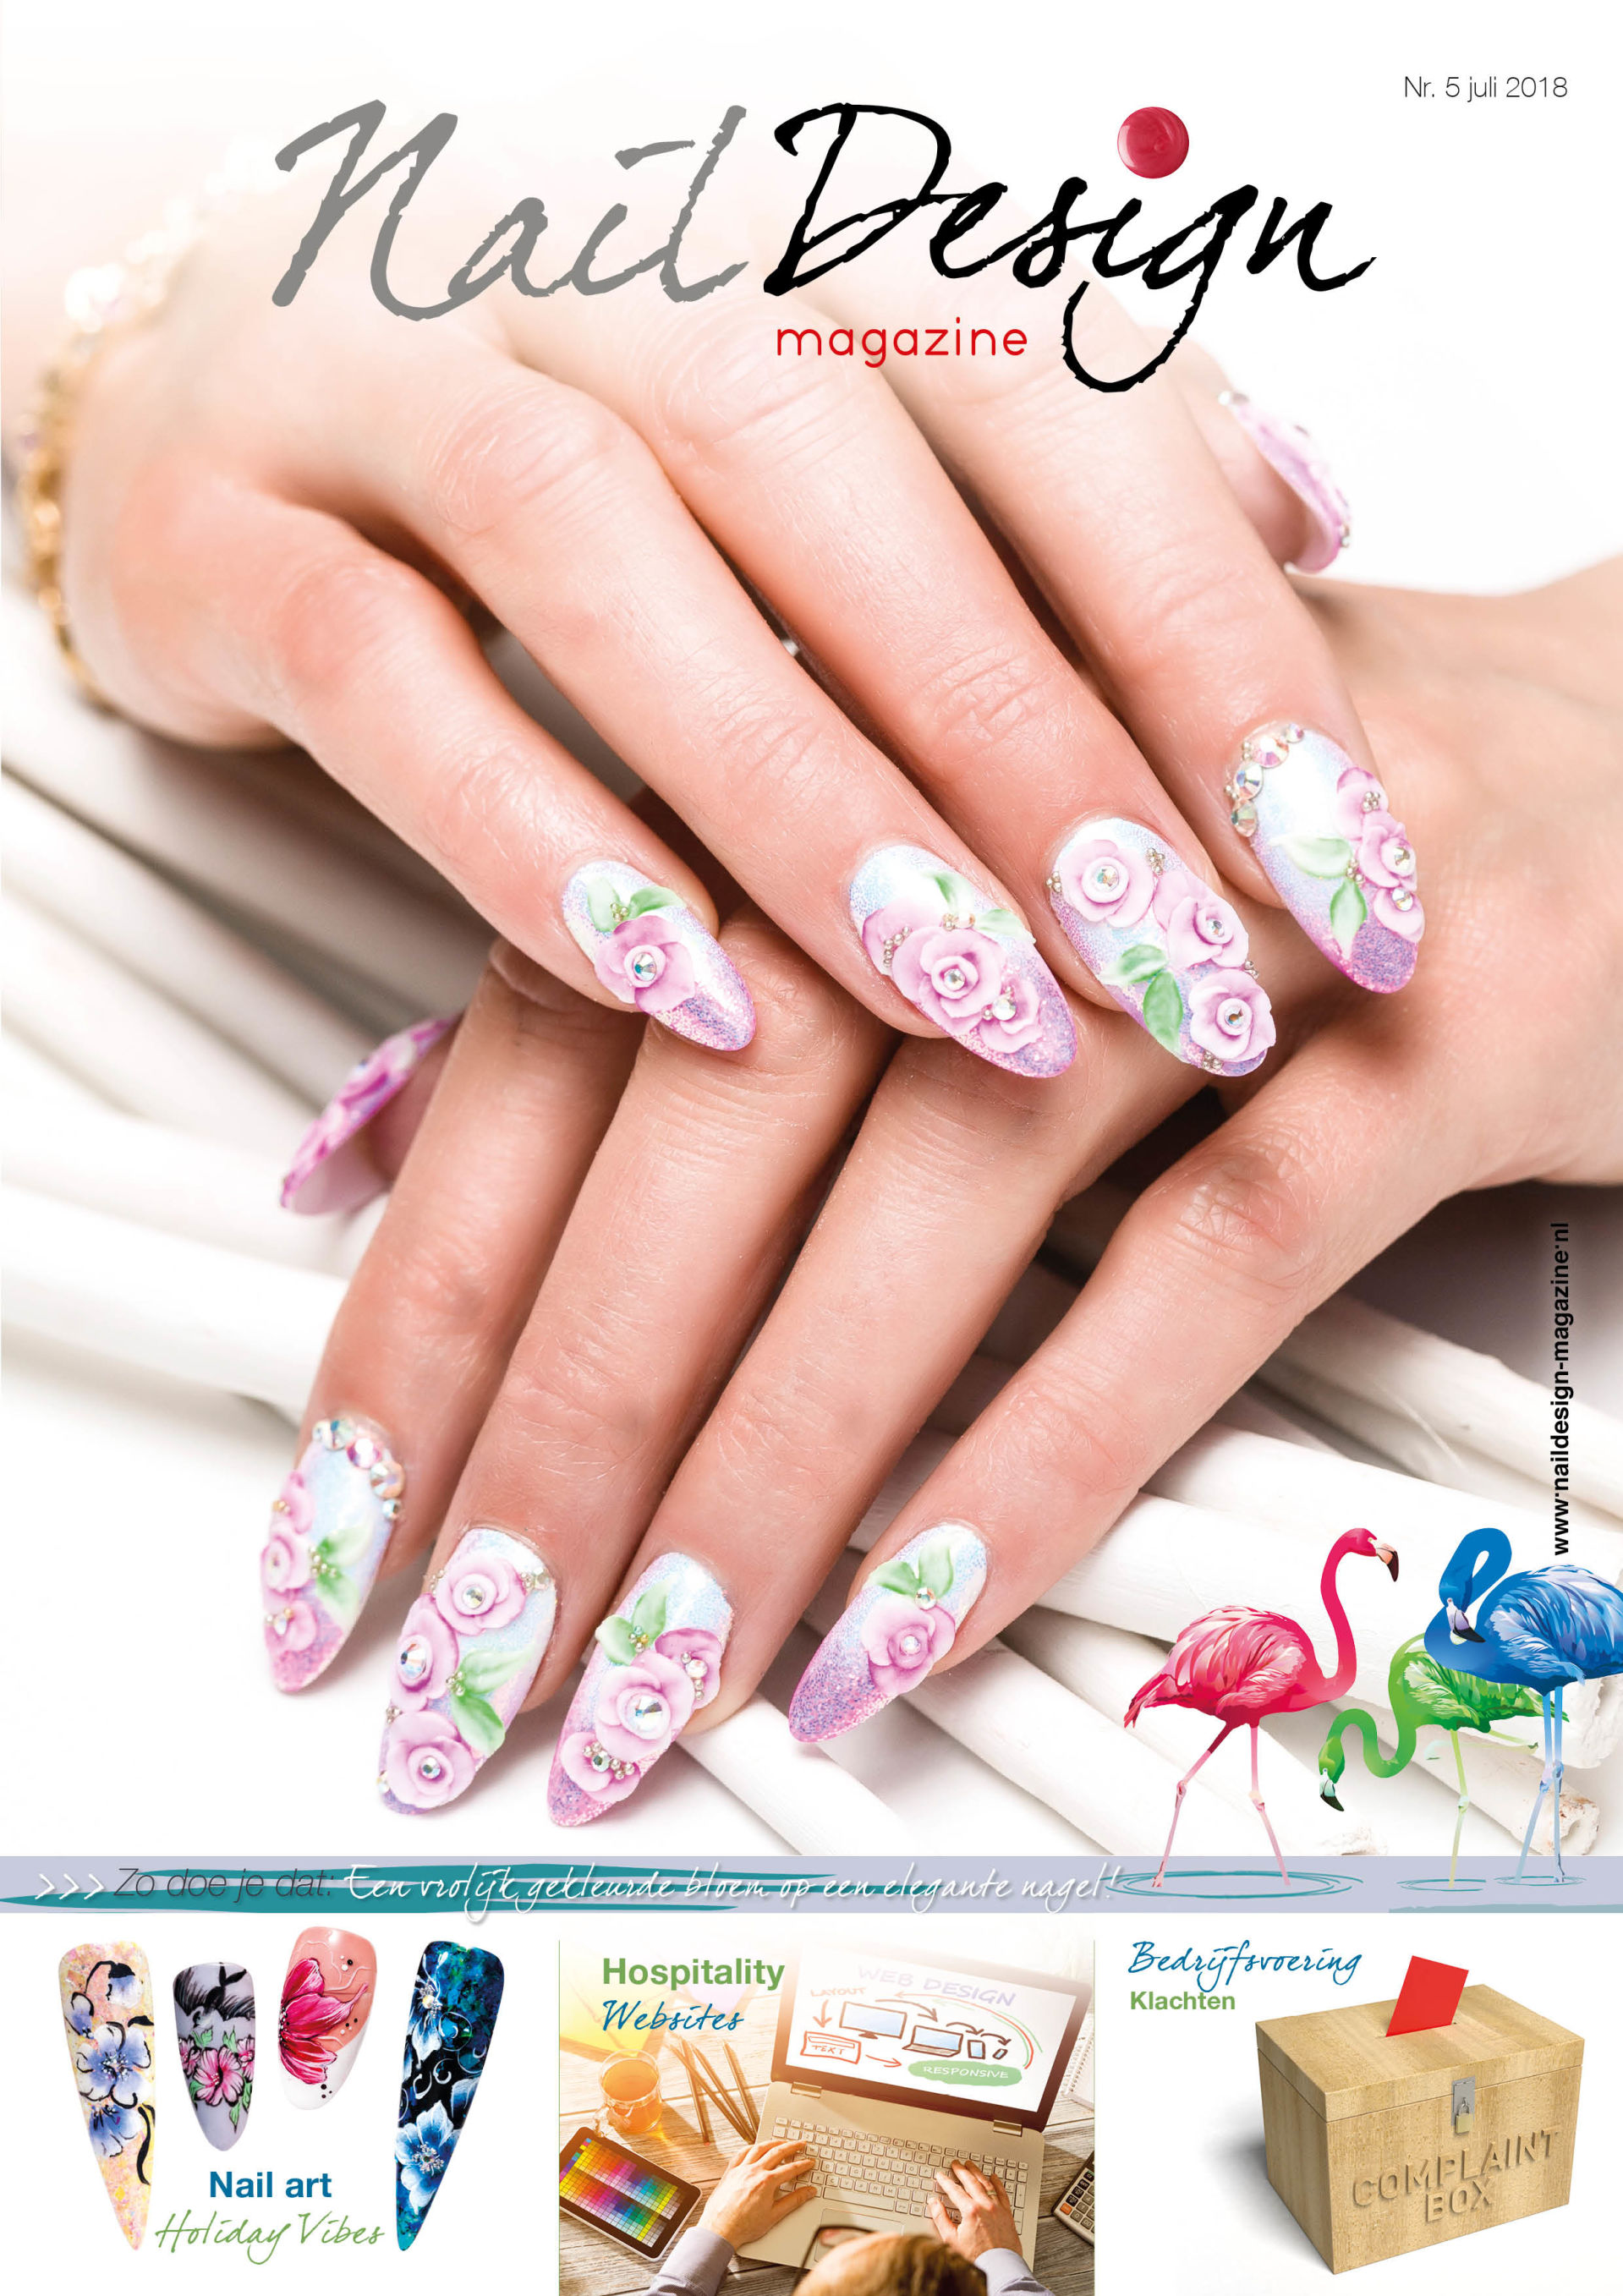 Nail Design Magazine - Home